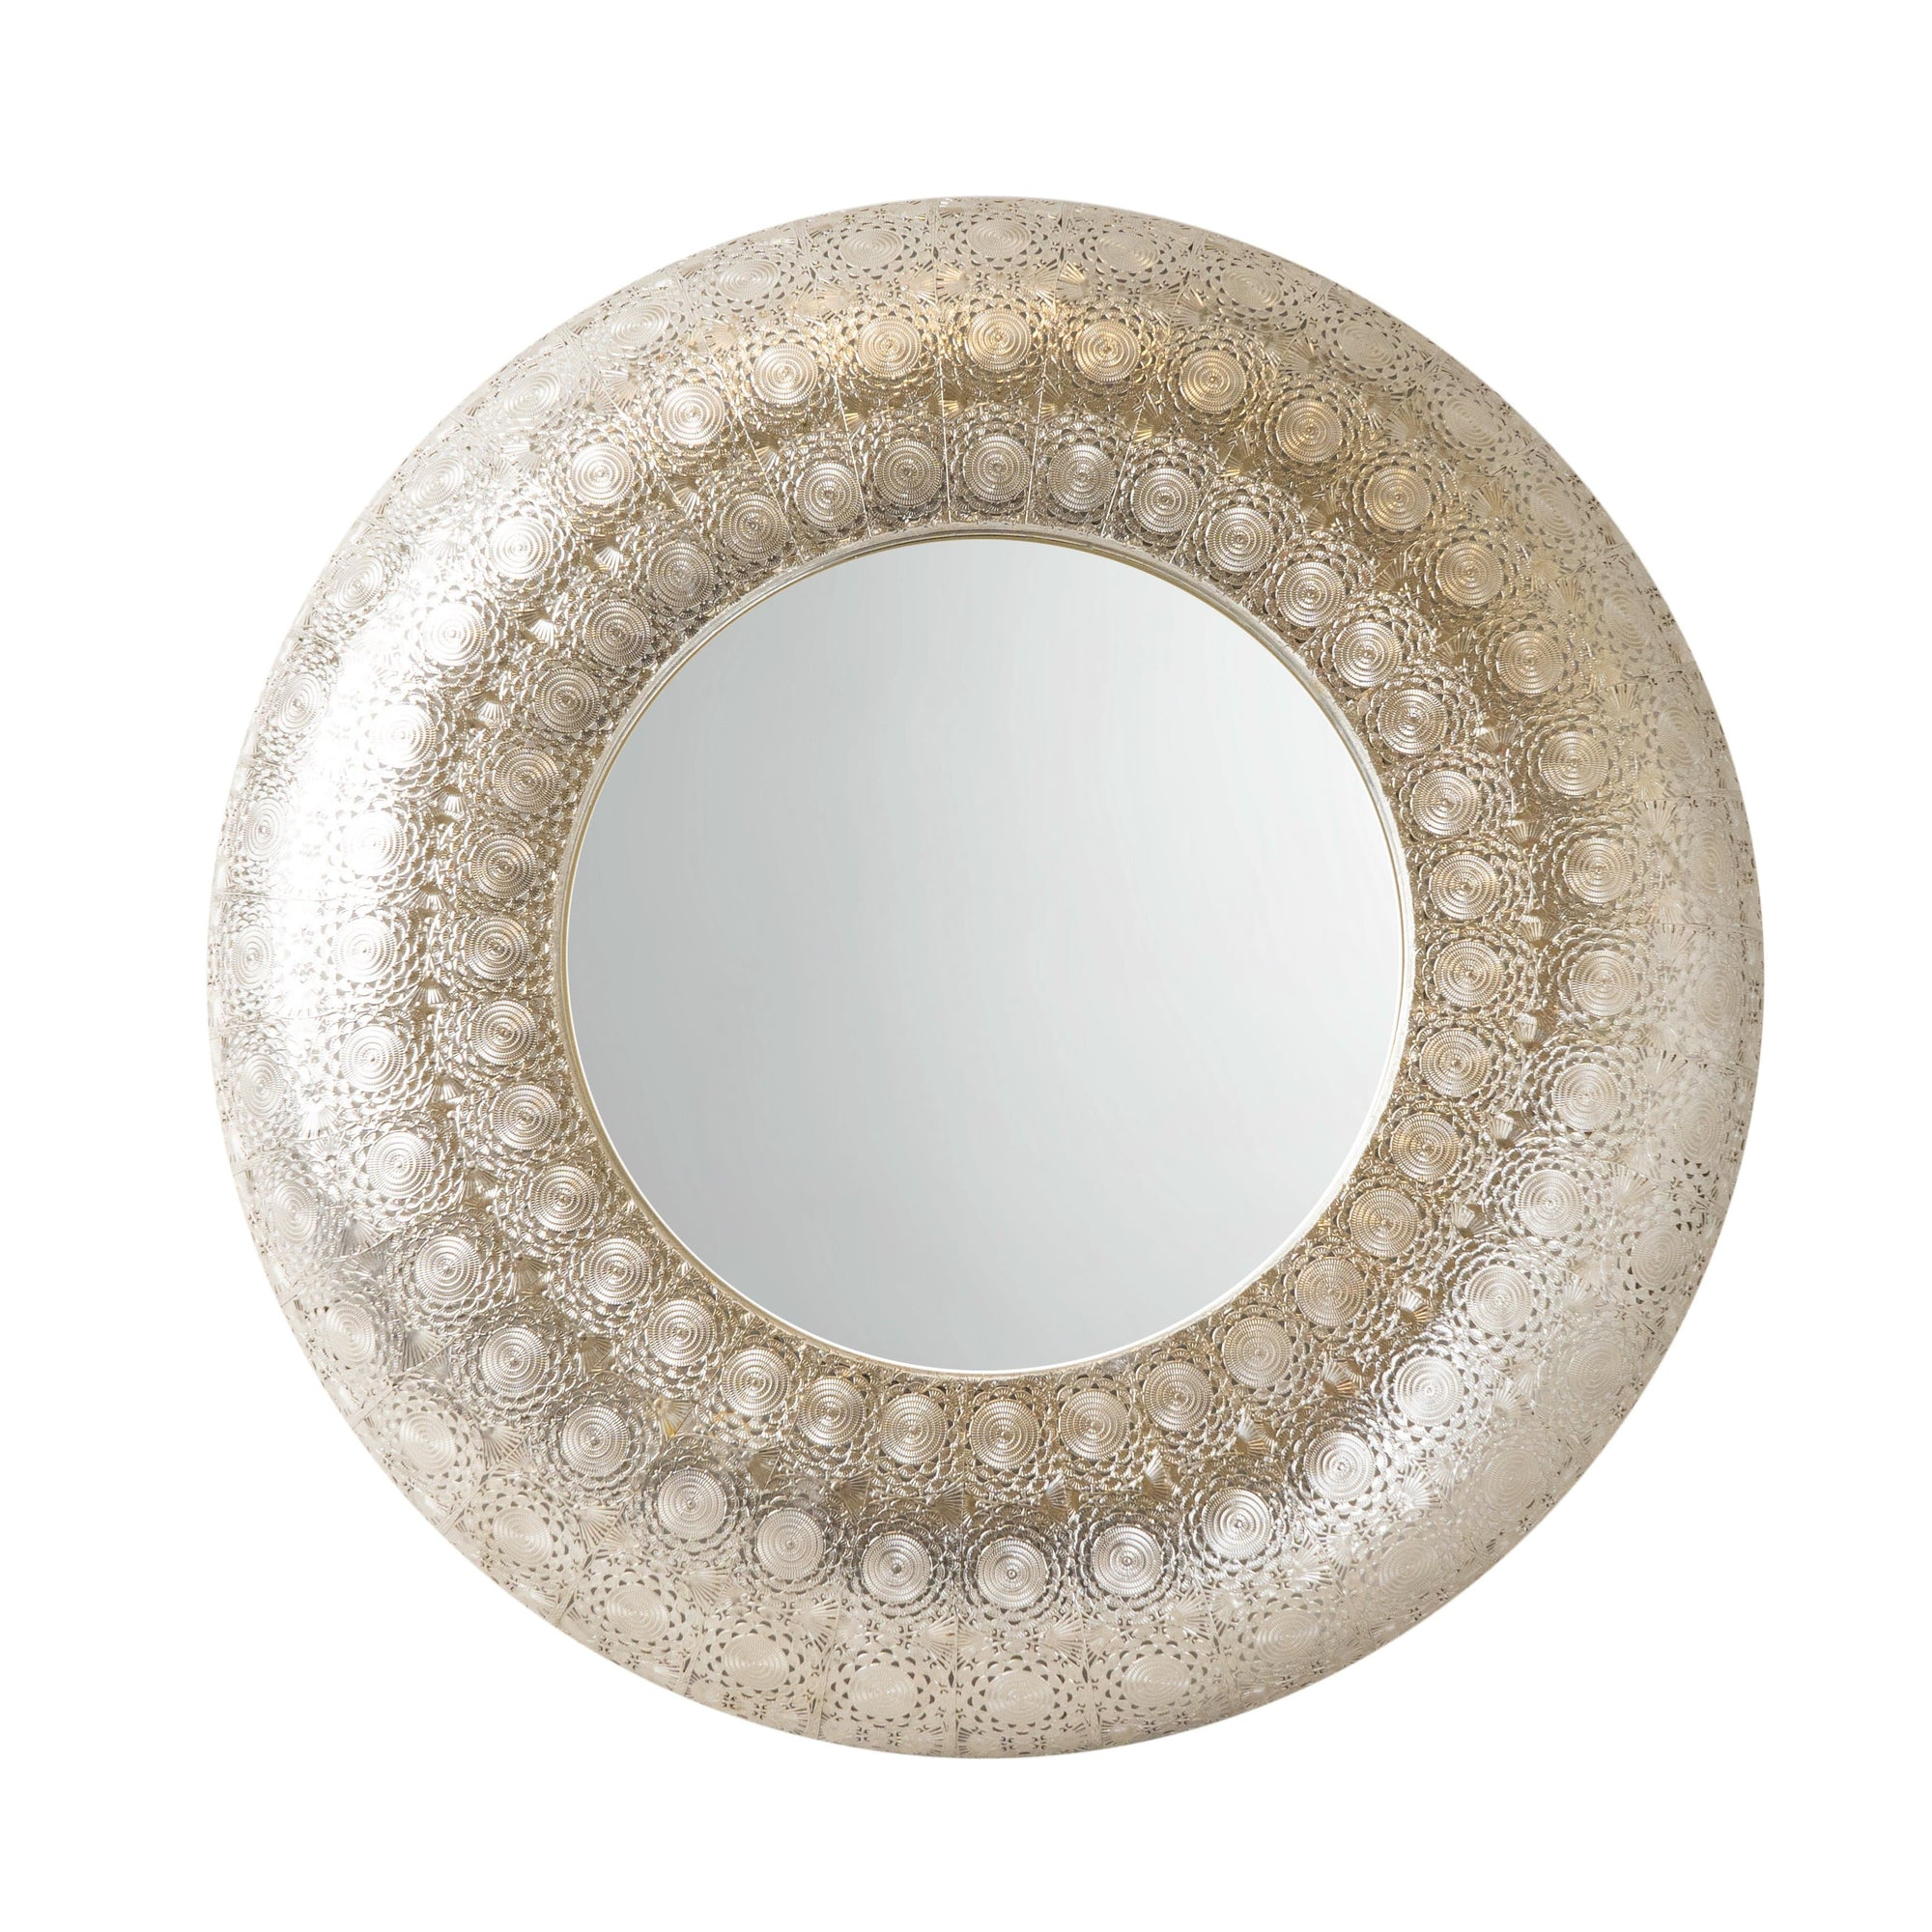 Moroccan Cut Out Filigree Silver Round Mirror 72cm 1PK